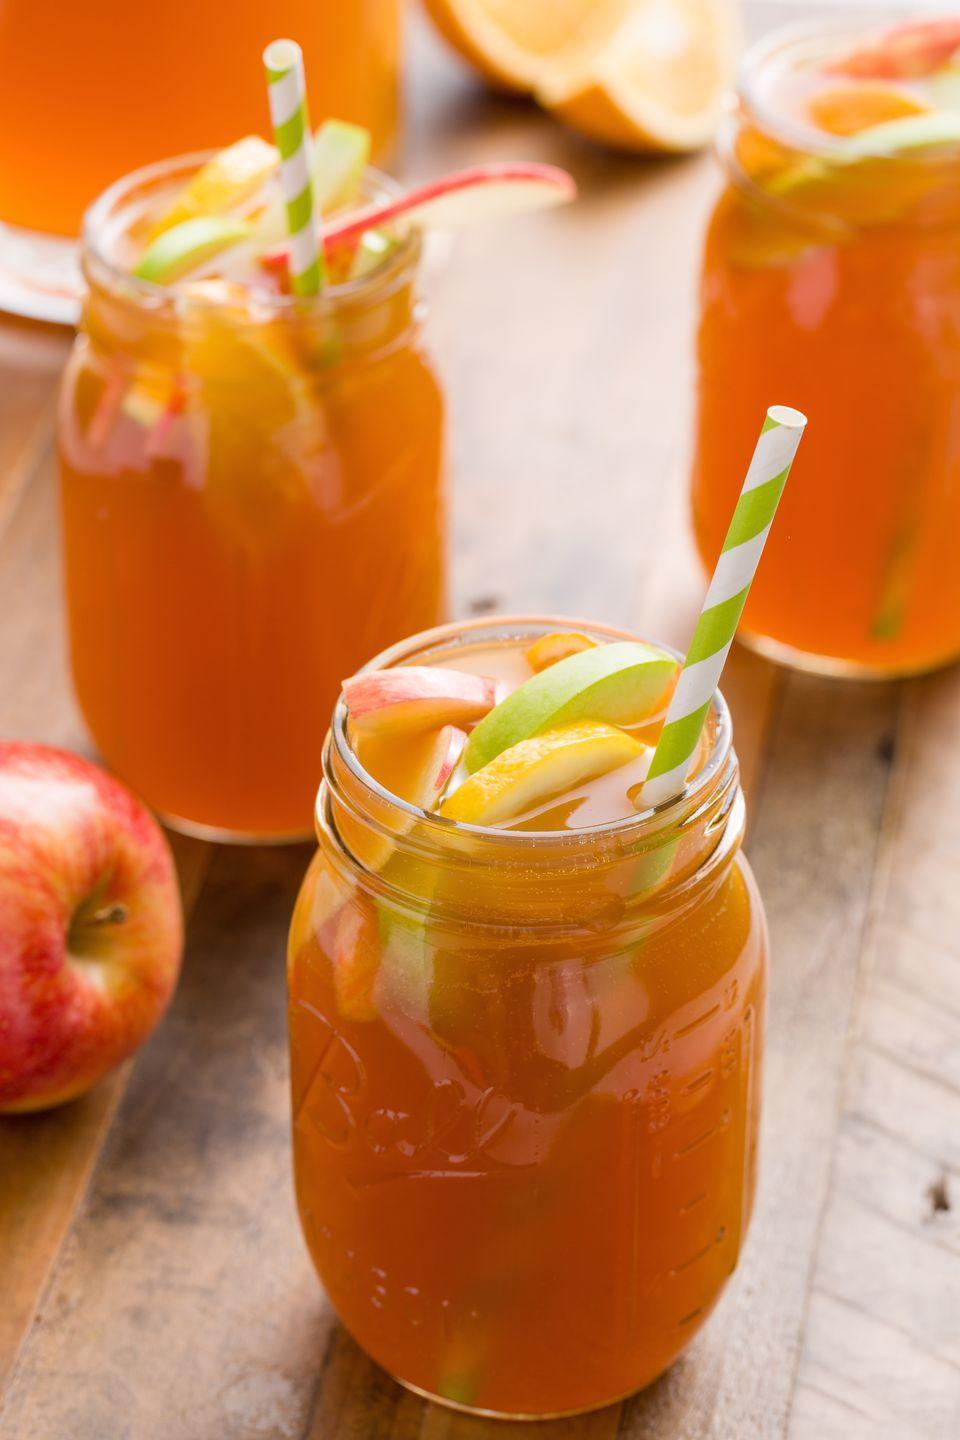 "<p>Mint + cider will keep you refreshed throughout the game.</p><p>Get the recipe from <a href=""https://www.delish.com/cooking/a23581354/apple-cider-mojitos-recipe/"" rel=""nofollow noopener"" target=""_blank"" data-ylk=""slk:Delish"" class=""link rapid-noclick-resp"">Delish</a>.</p>"